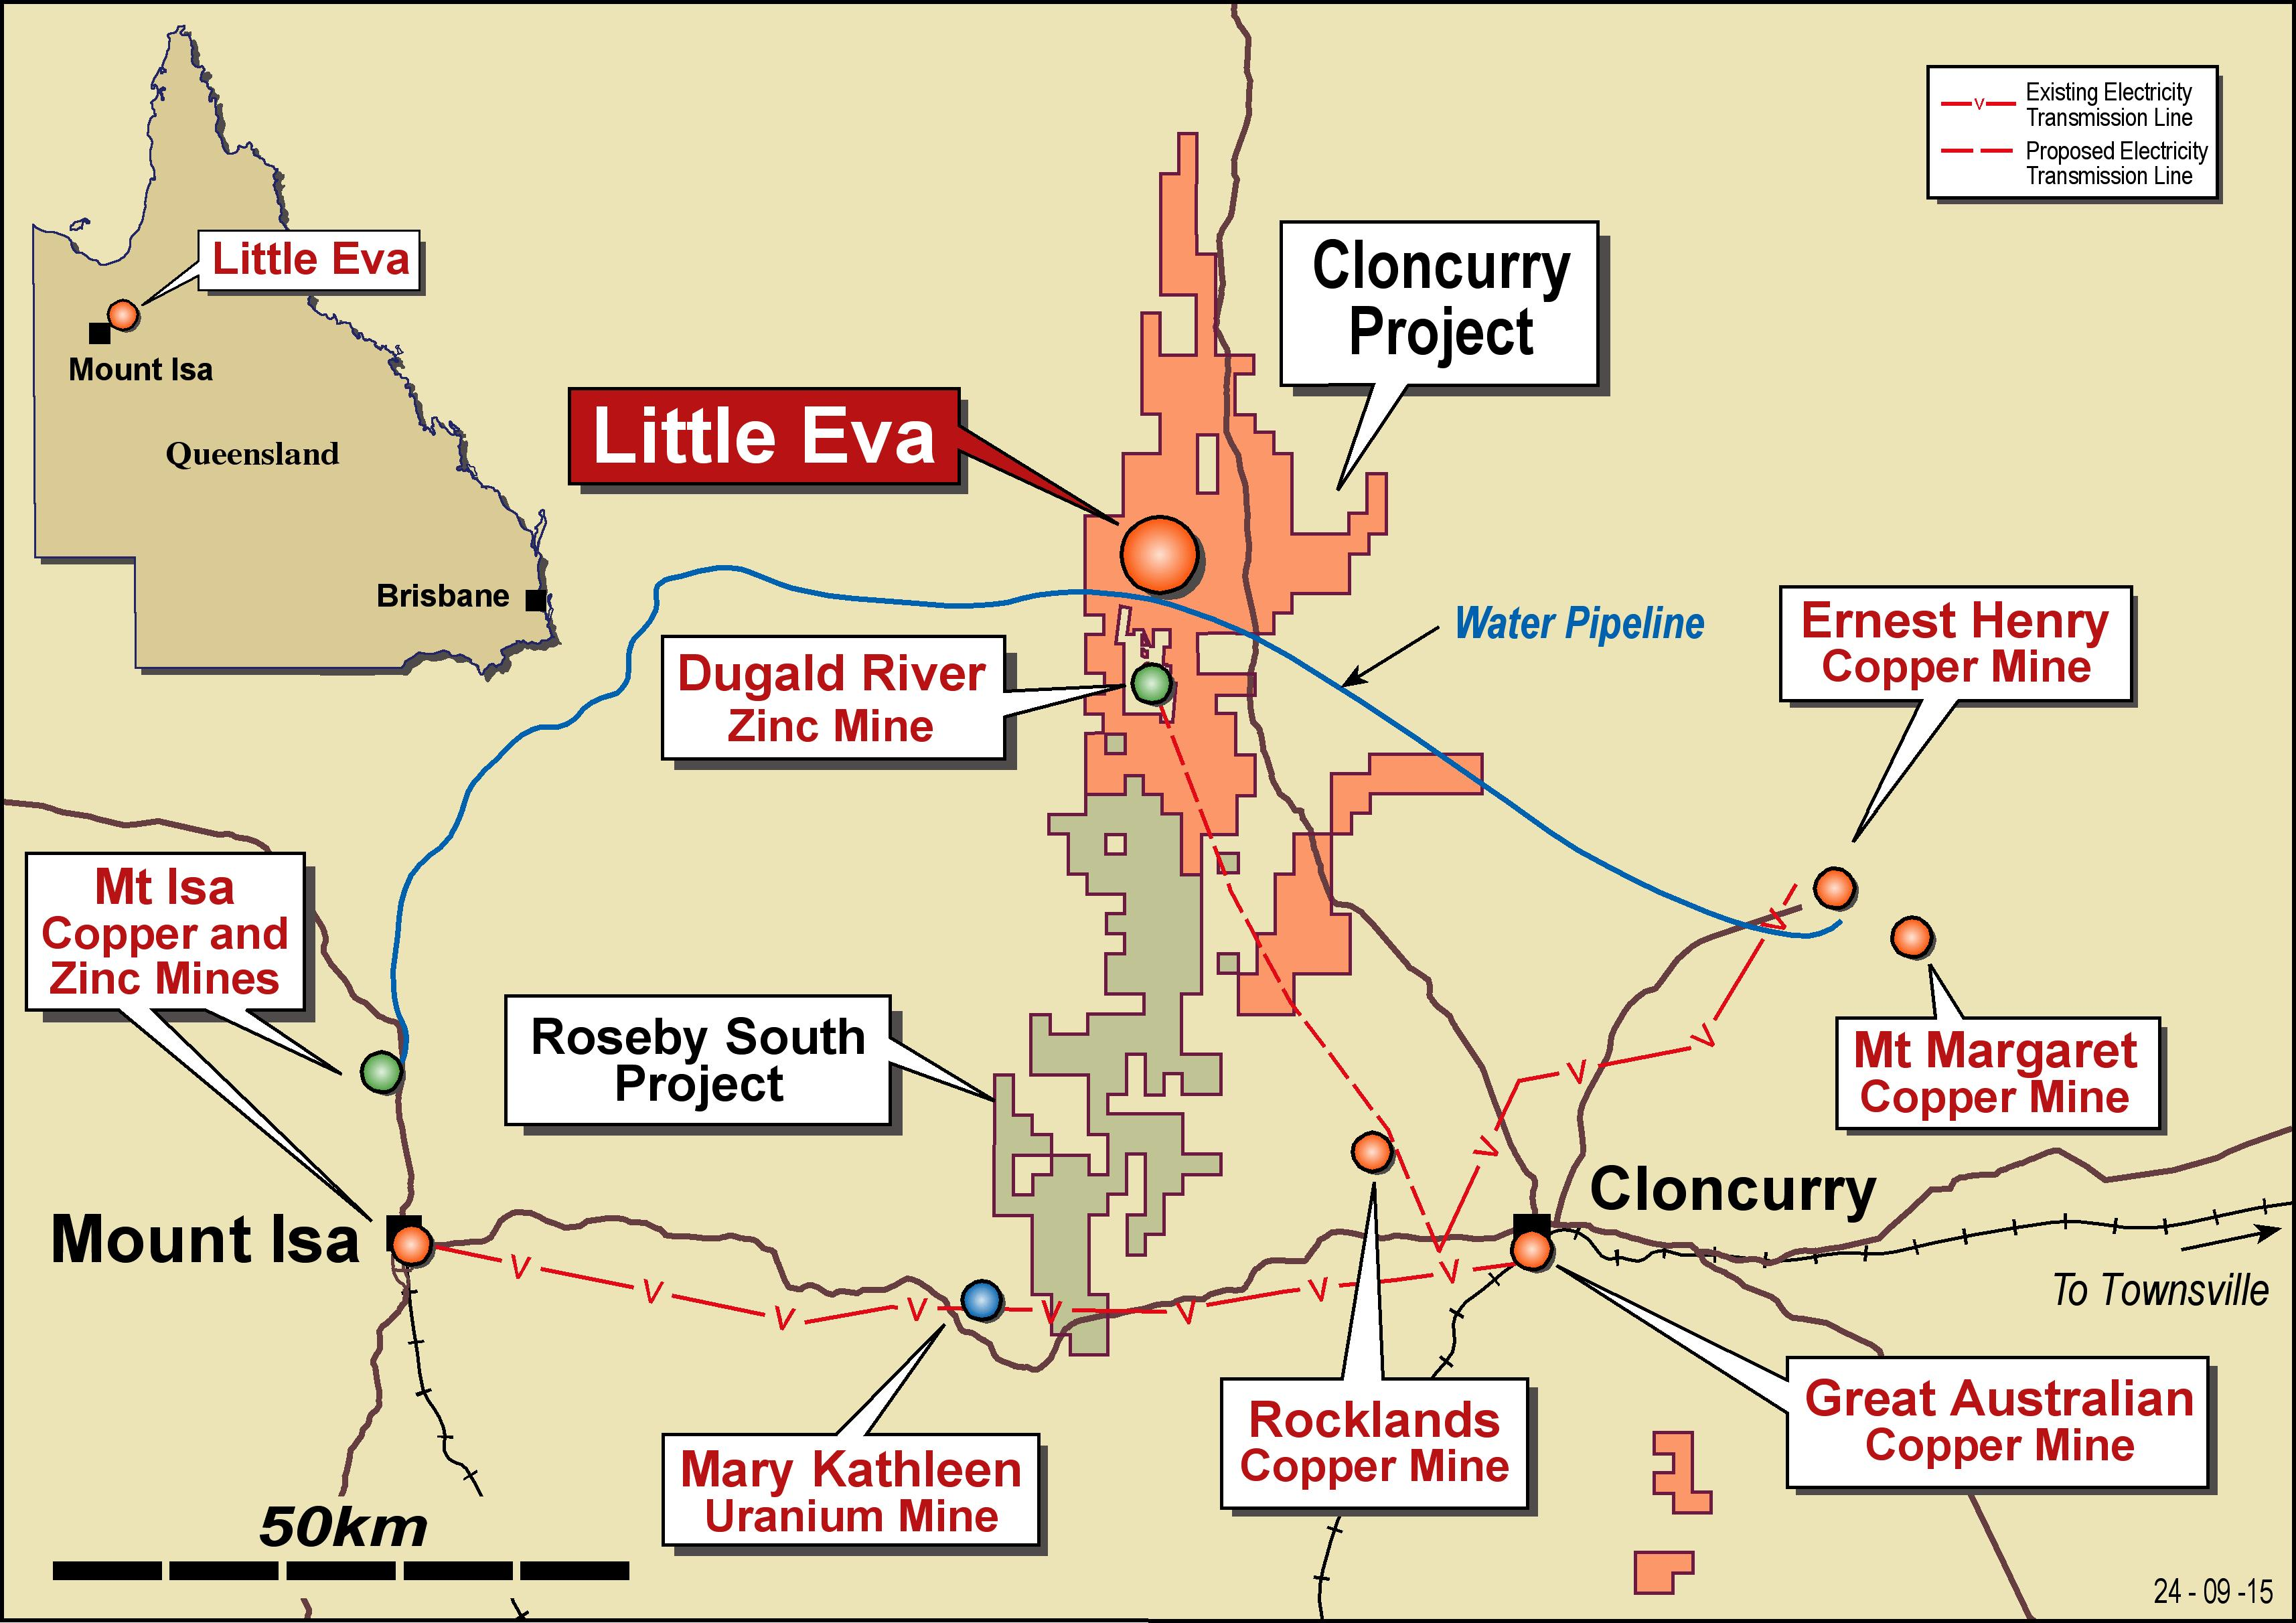 Altona and SRIG agree to extend closing date for Cloncurry JV